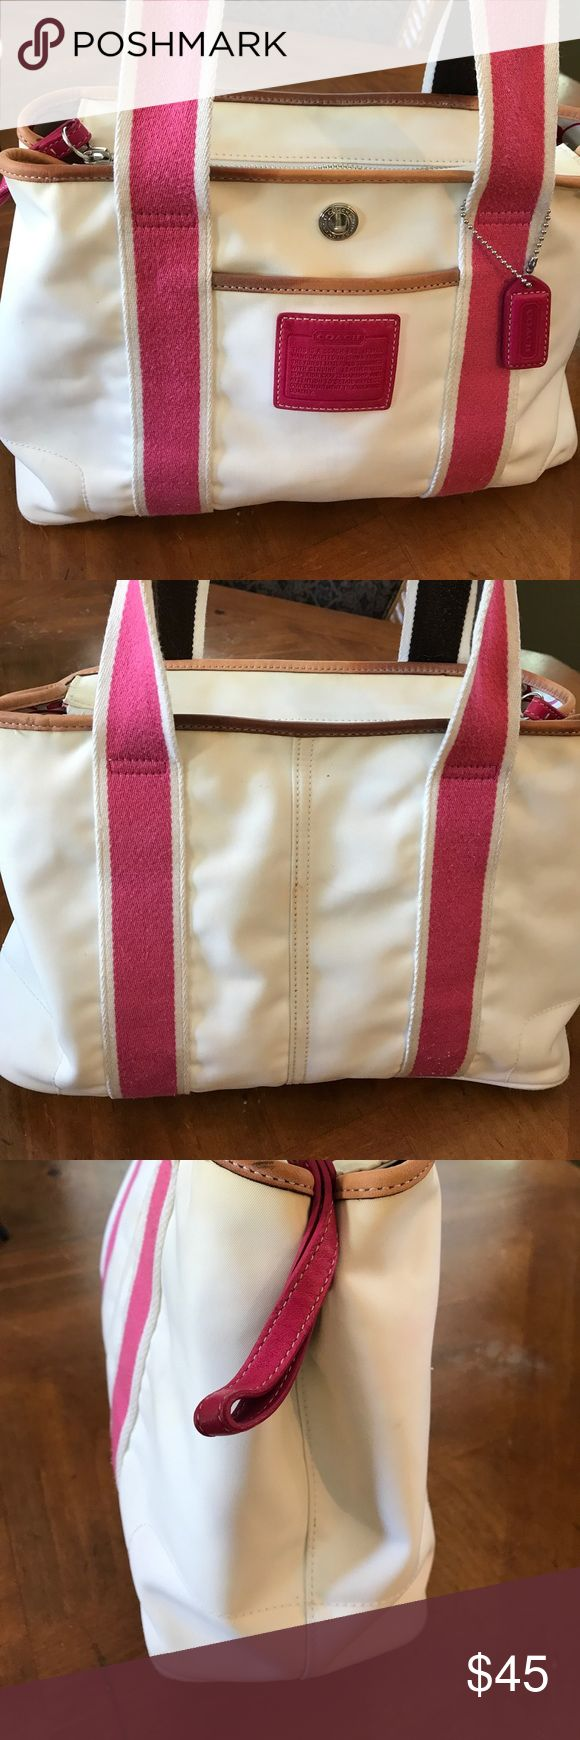 Coach Satchel bag Looks cute ,it's washable,has some minor trace of dirt around but overall looks good! Coach Bags Satchels